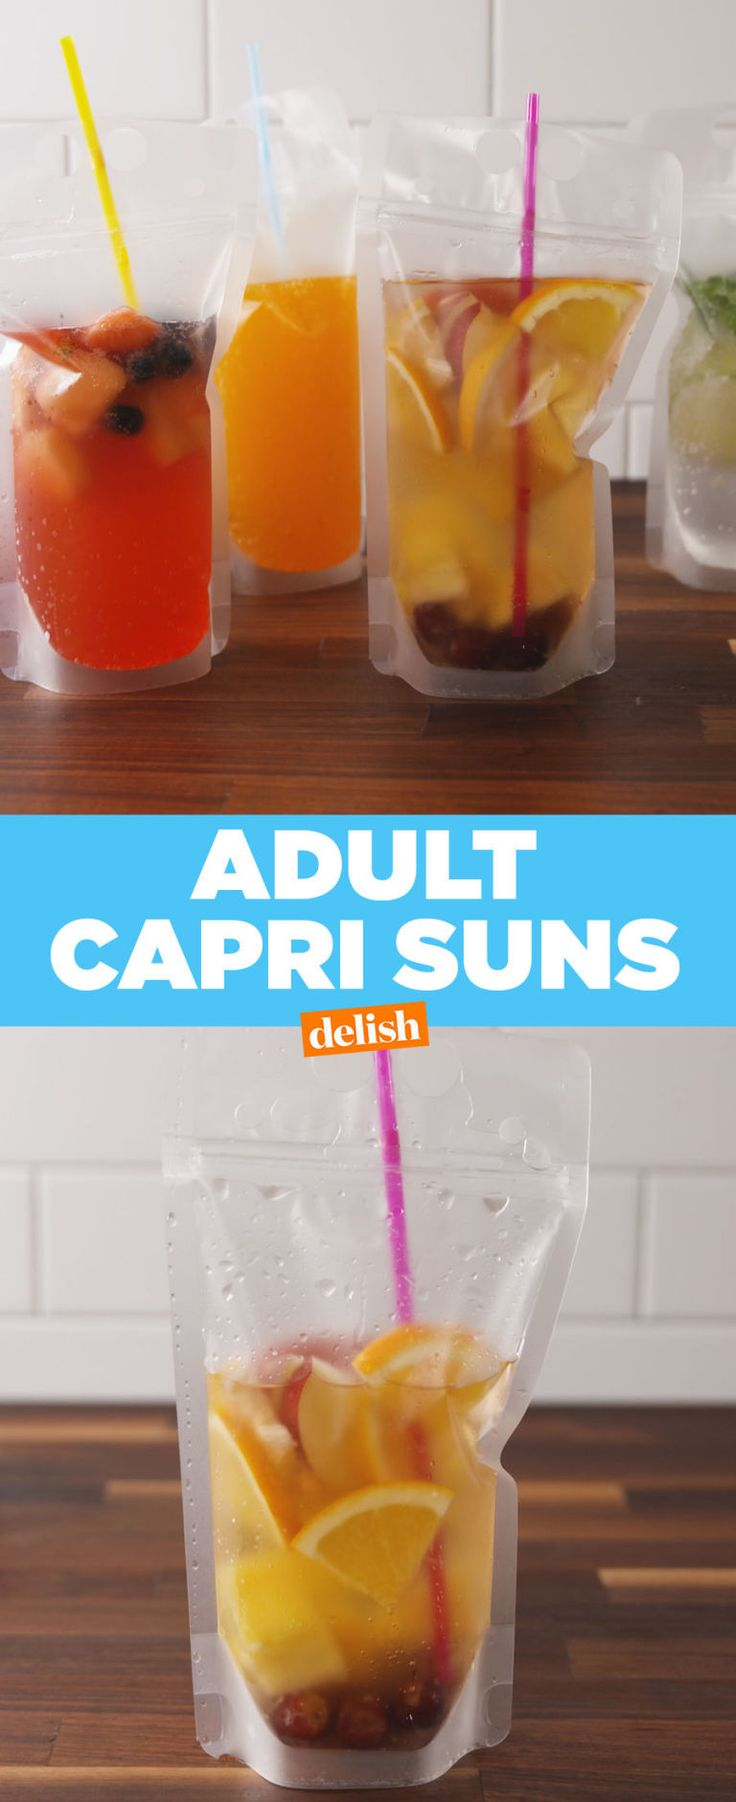 You Can Now Make Your Own Spiked Capri Suns  - Delish.com